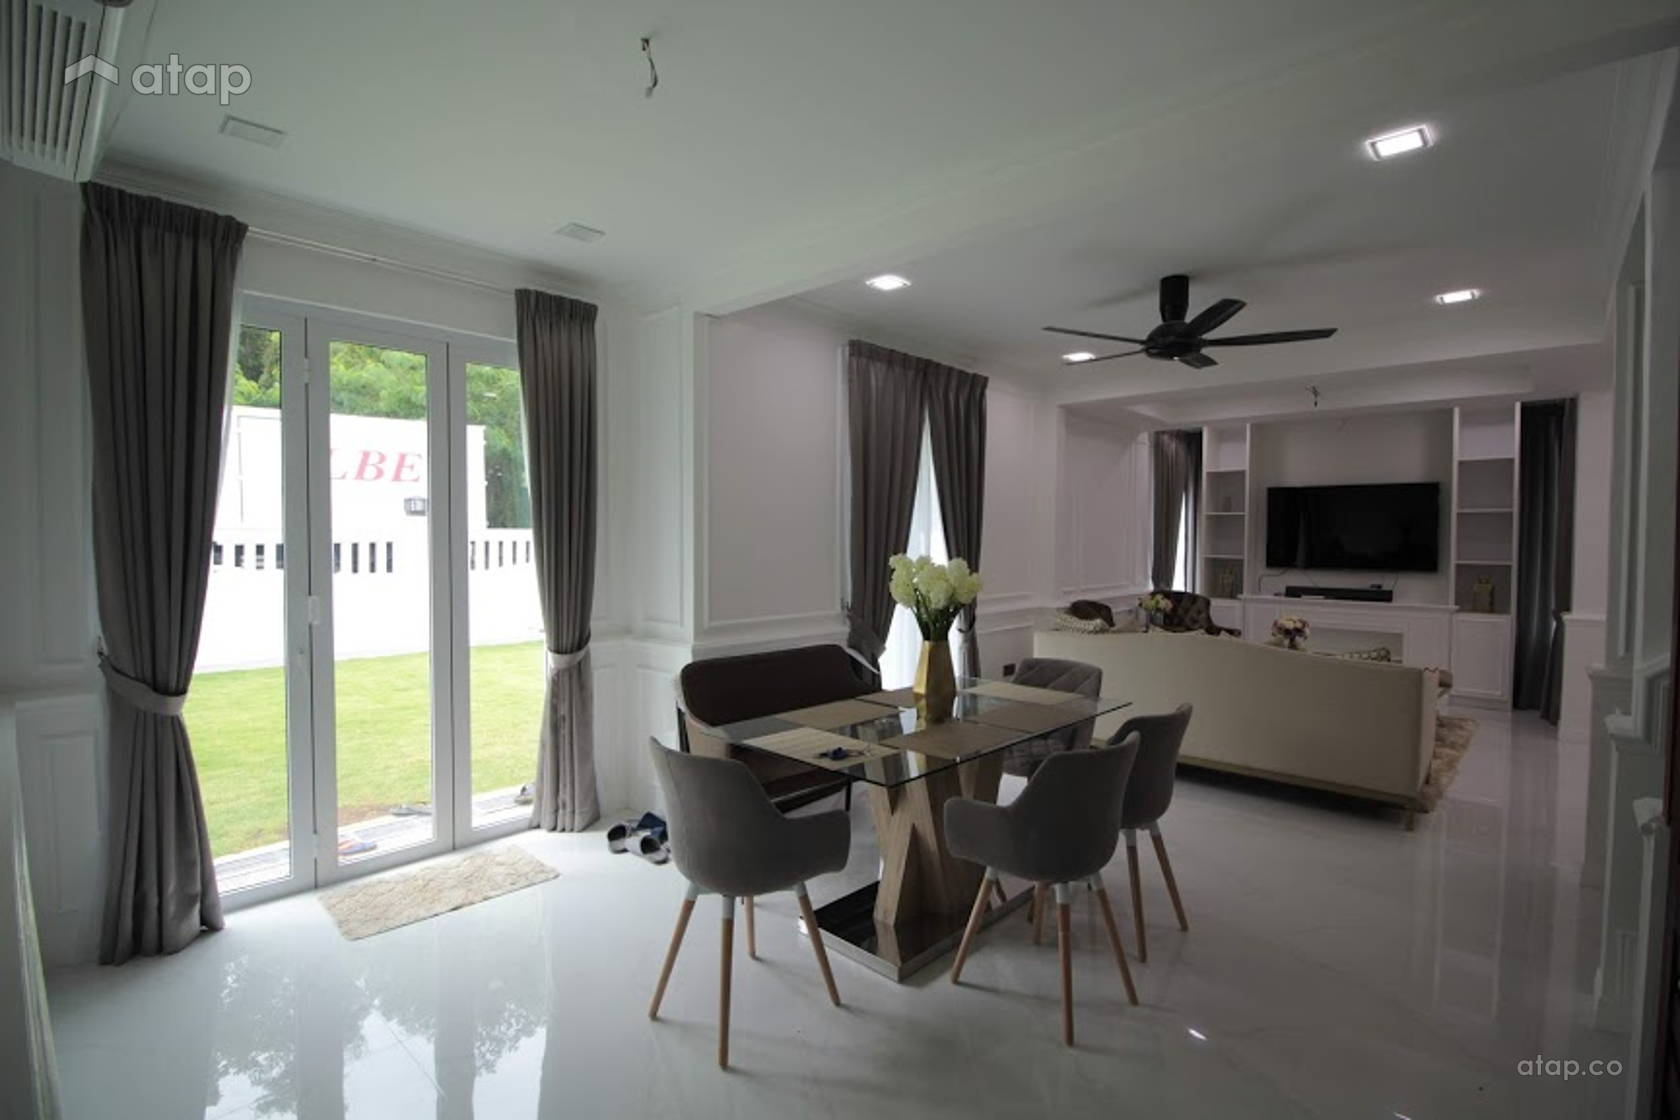 Asian scandinavian dining room living room elegant is simple share this professional